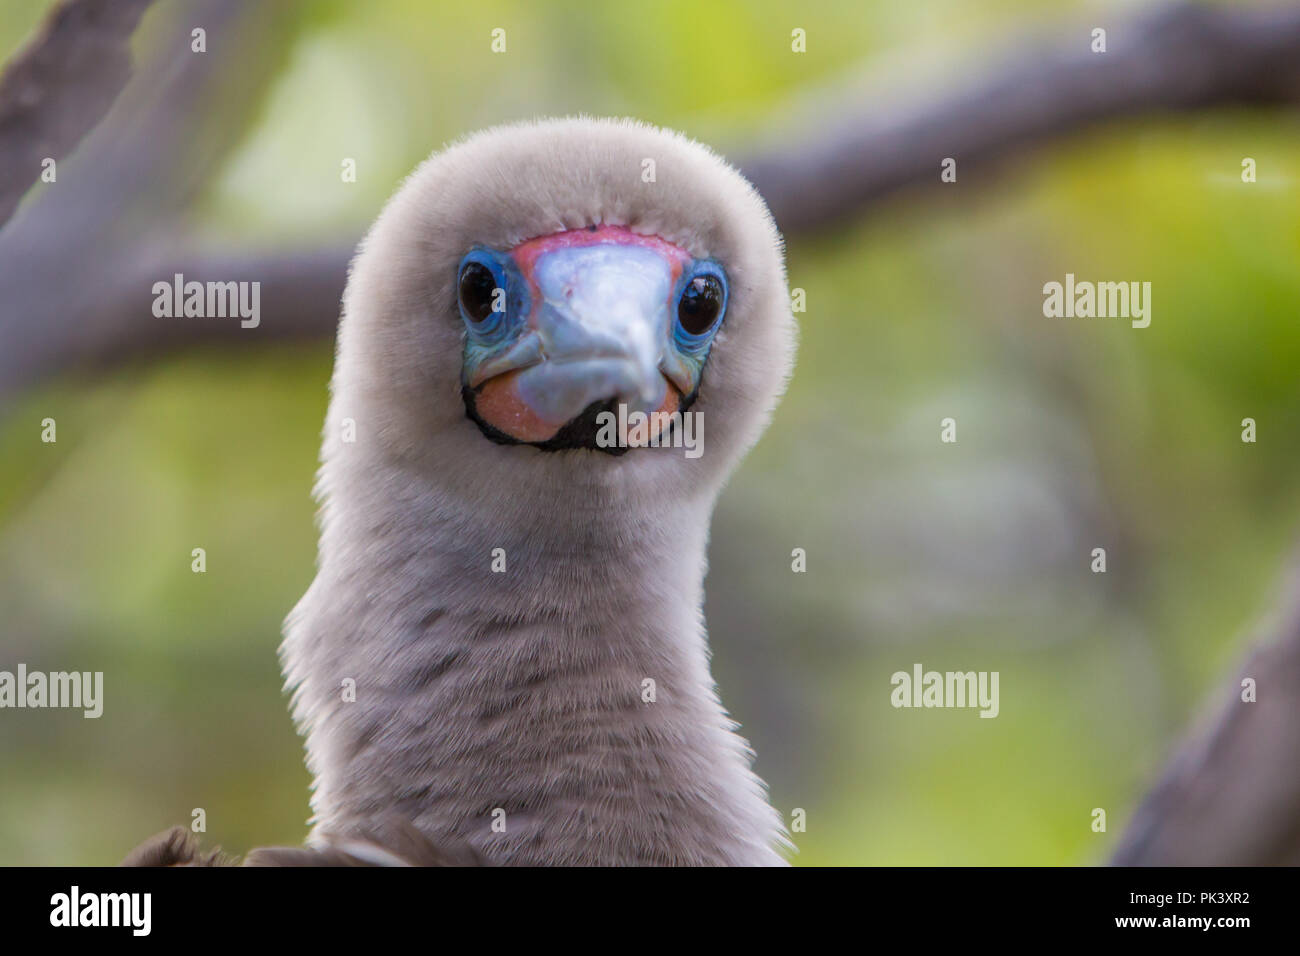 Red-footed booby nesting in one of the small islets or motus at Millennium atoll in the southern line islands of Kiribati - Stock Image